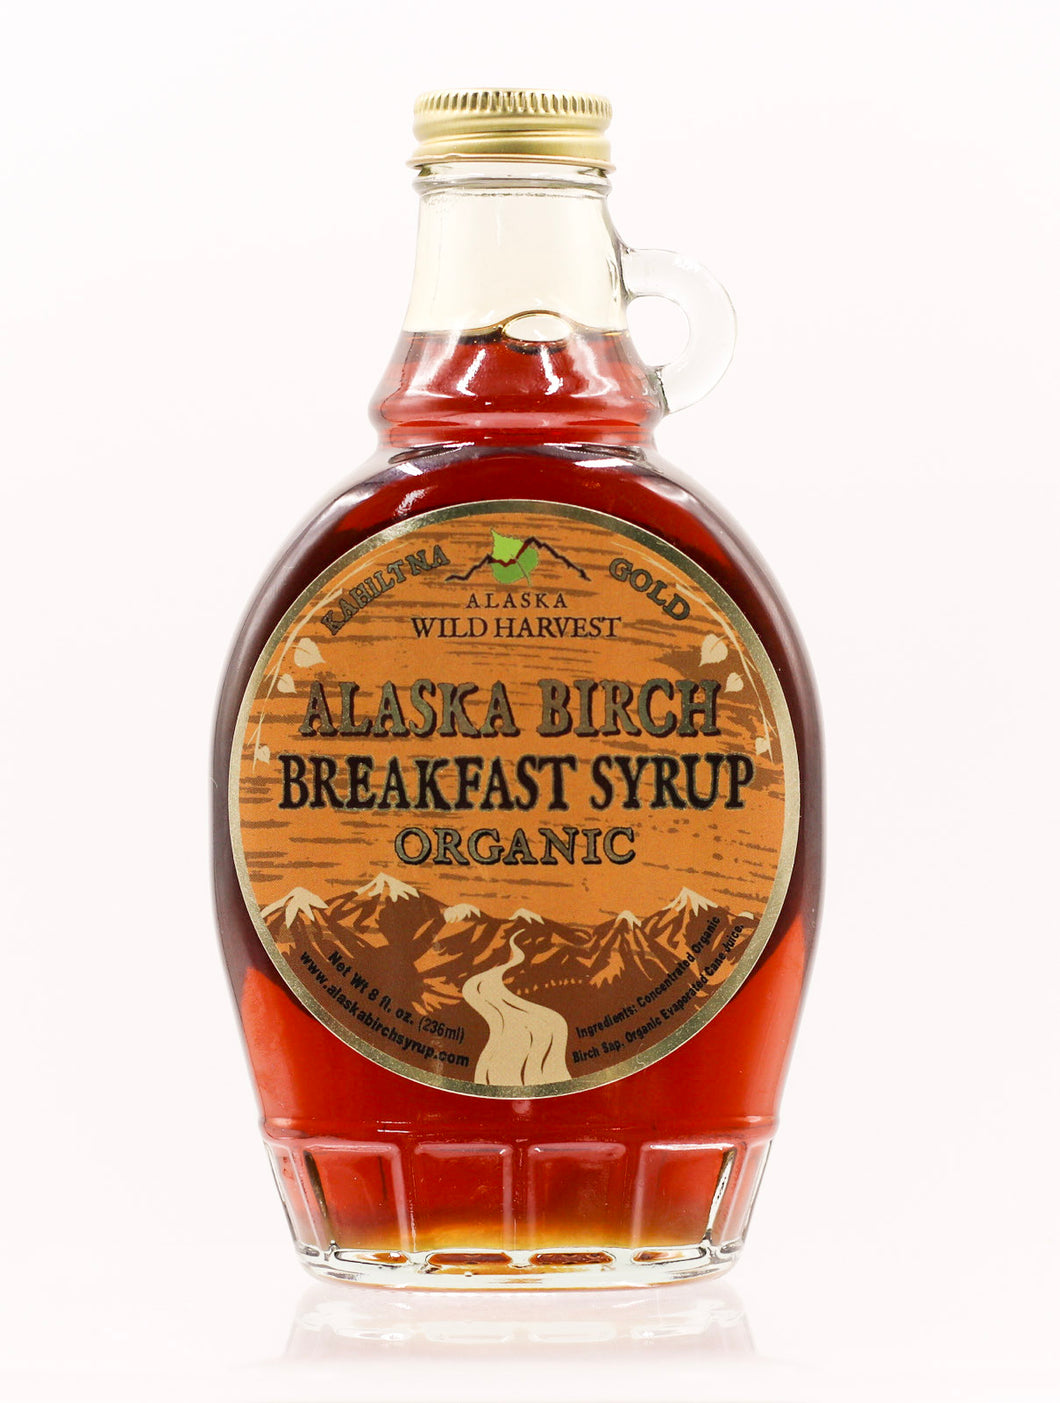 ALASKA BIRCH BREAKFAST SYRUP GLASS 8 OZ